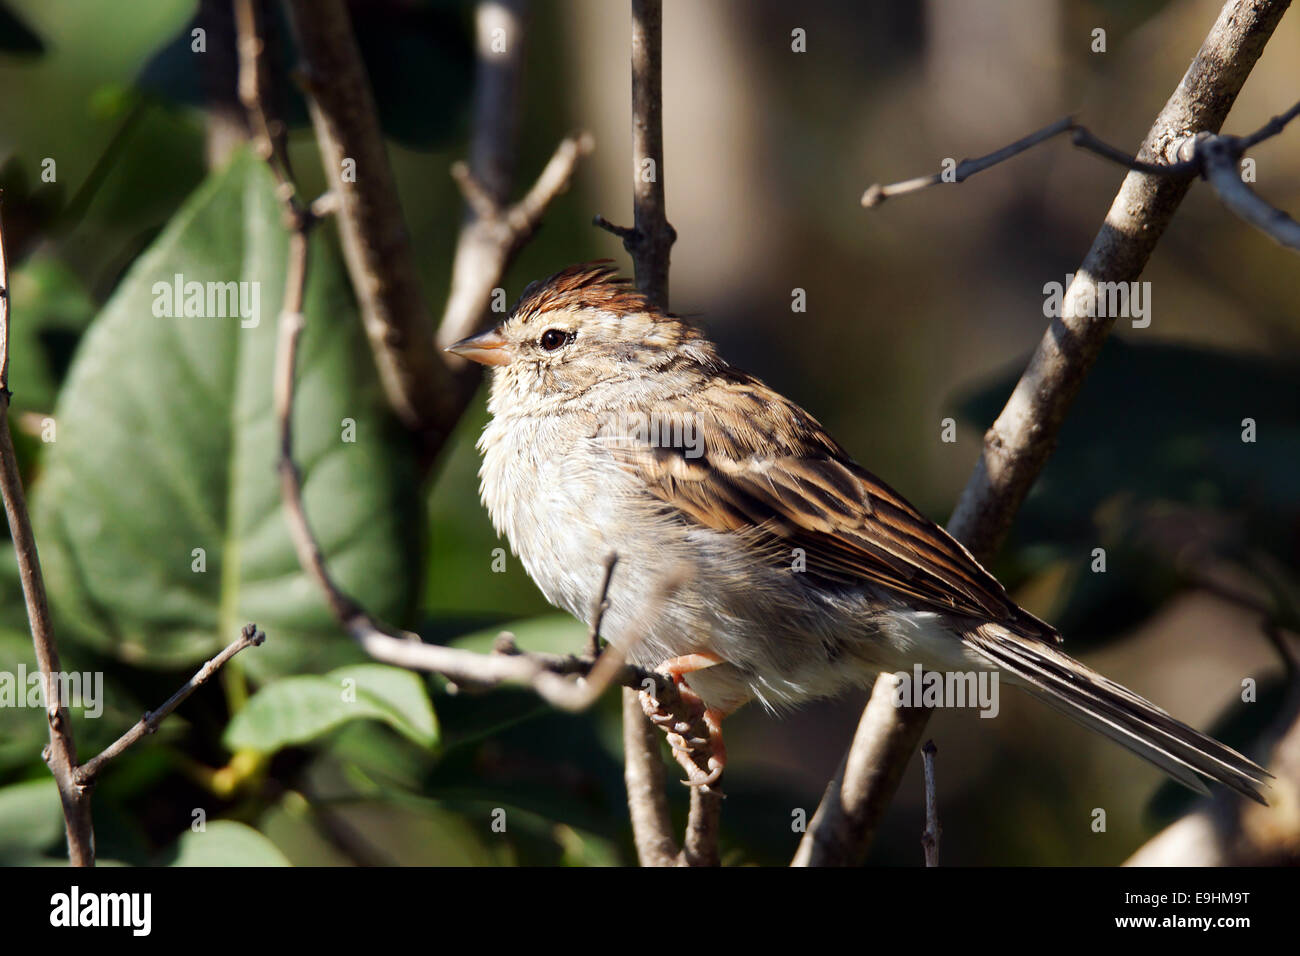 Chipping sparrow, Spizella passerina,little bird on a branch - Stock Image